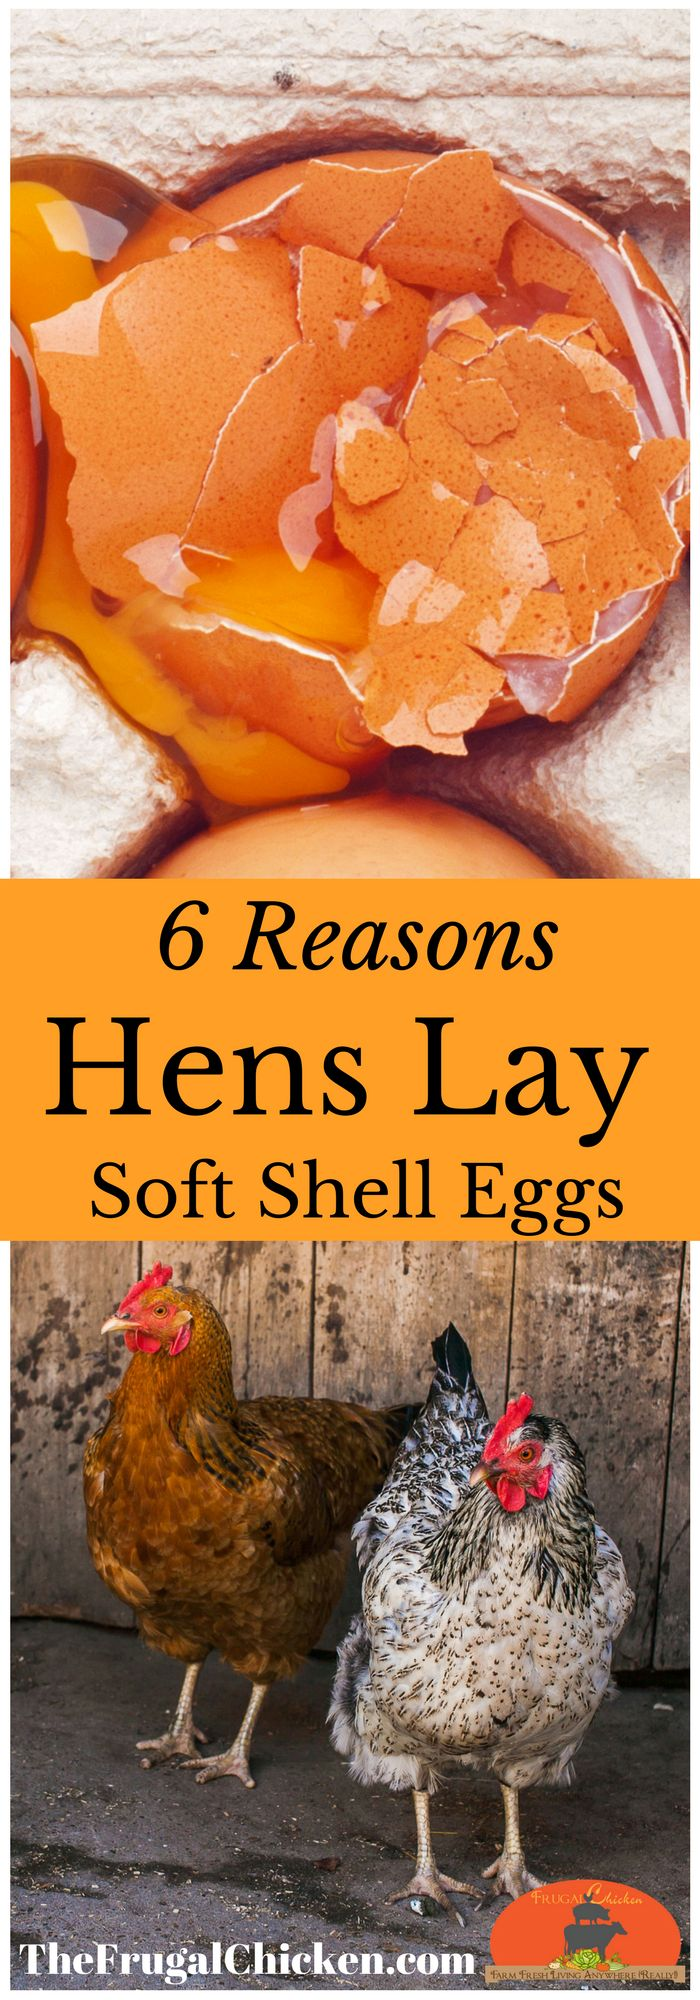 Soft shell eggs are 1/3rd freaky, 1/3rd disturbing, and 1/3rd cool as heck. But they also give you important clues to your hen's health. Here's the inside dirt, and whether you need to take immediate steps to help your flock.